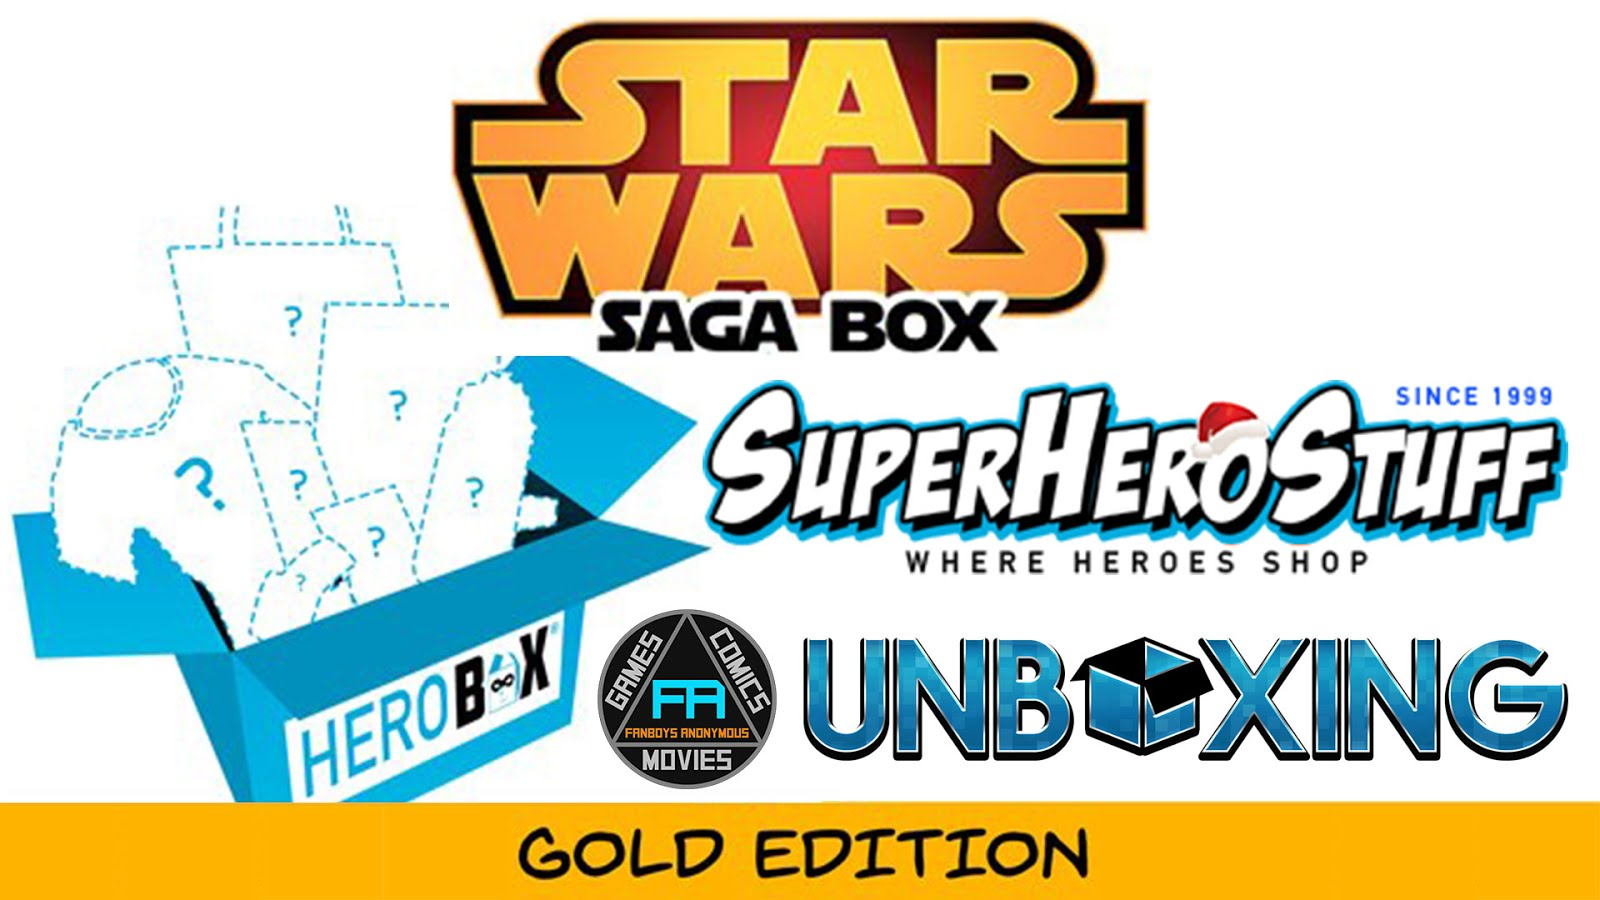 Star Wars Saga Box Gold Edition Unboxing Herobox SuperHeroStuff